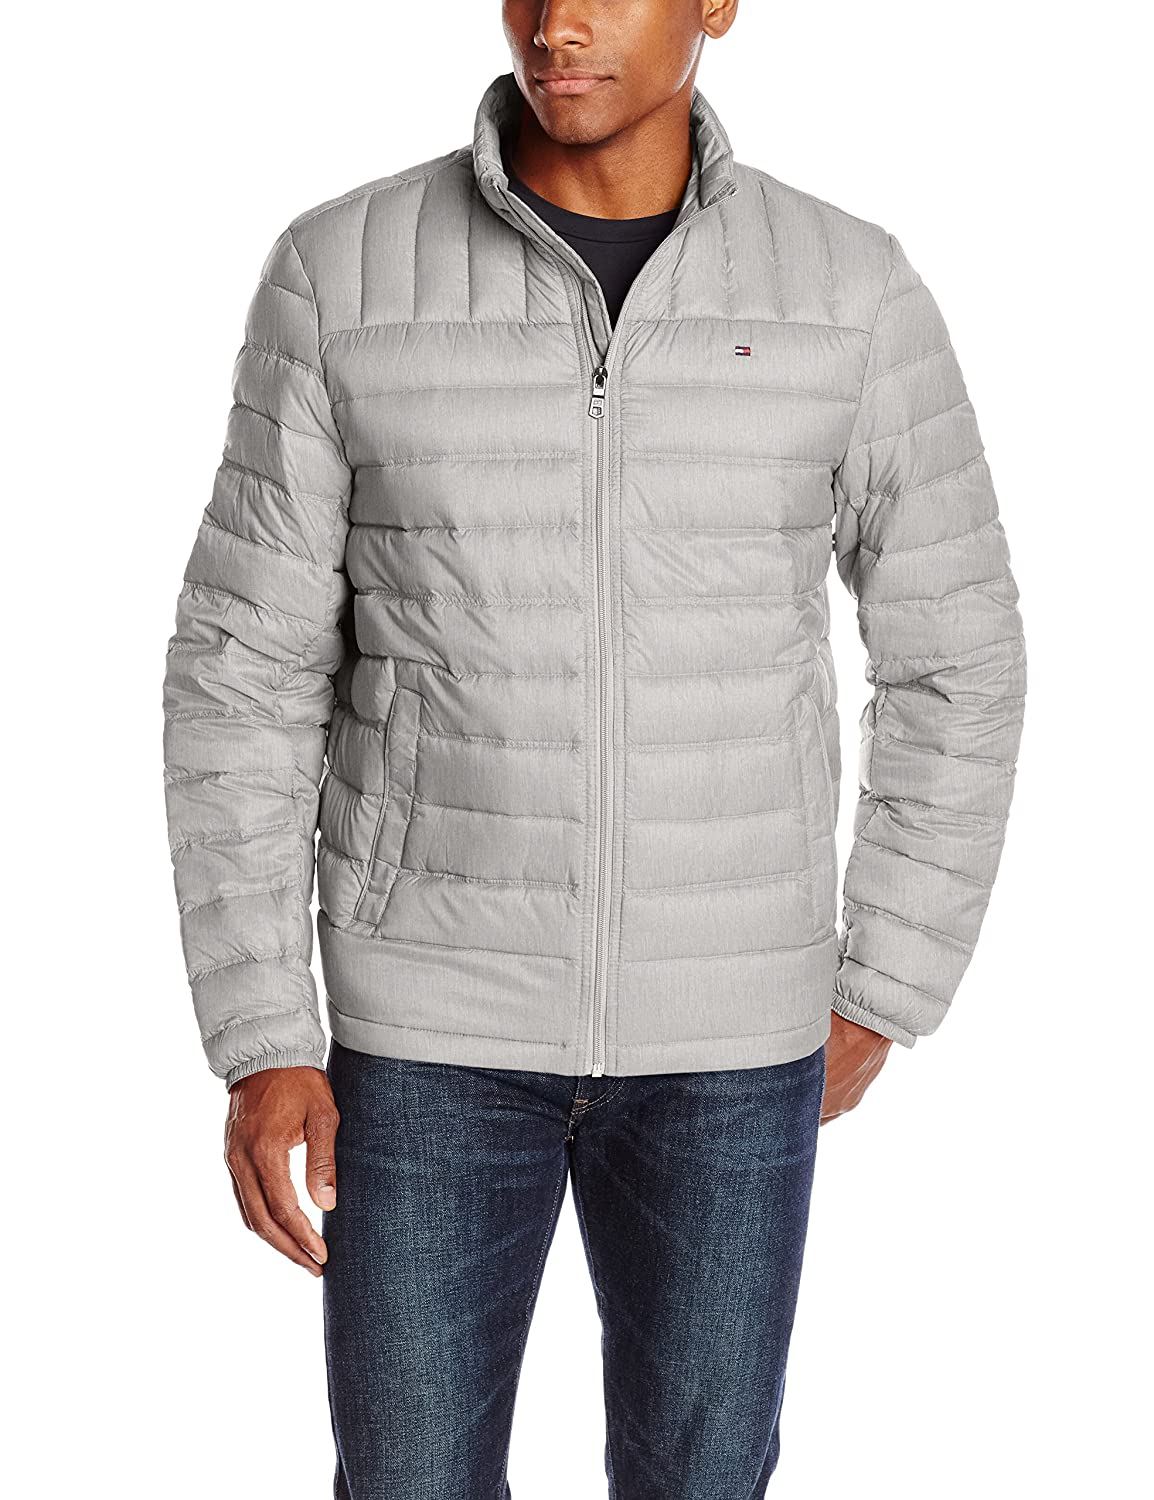 Tommy Hilfiger Men's Packable Down Jacket (Regular and Big & Tall Sizes) 155AN231